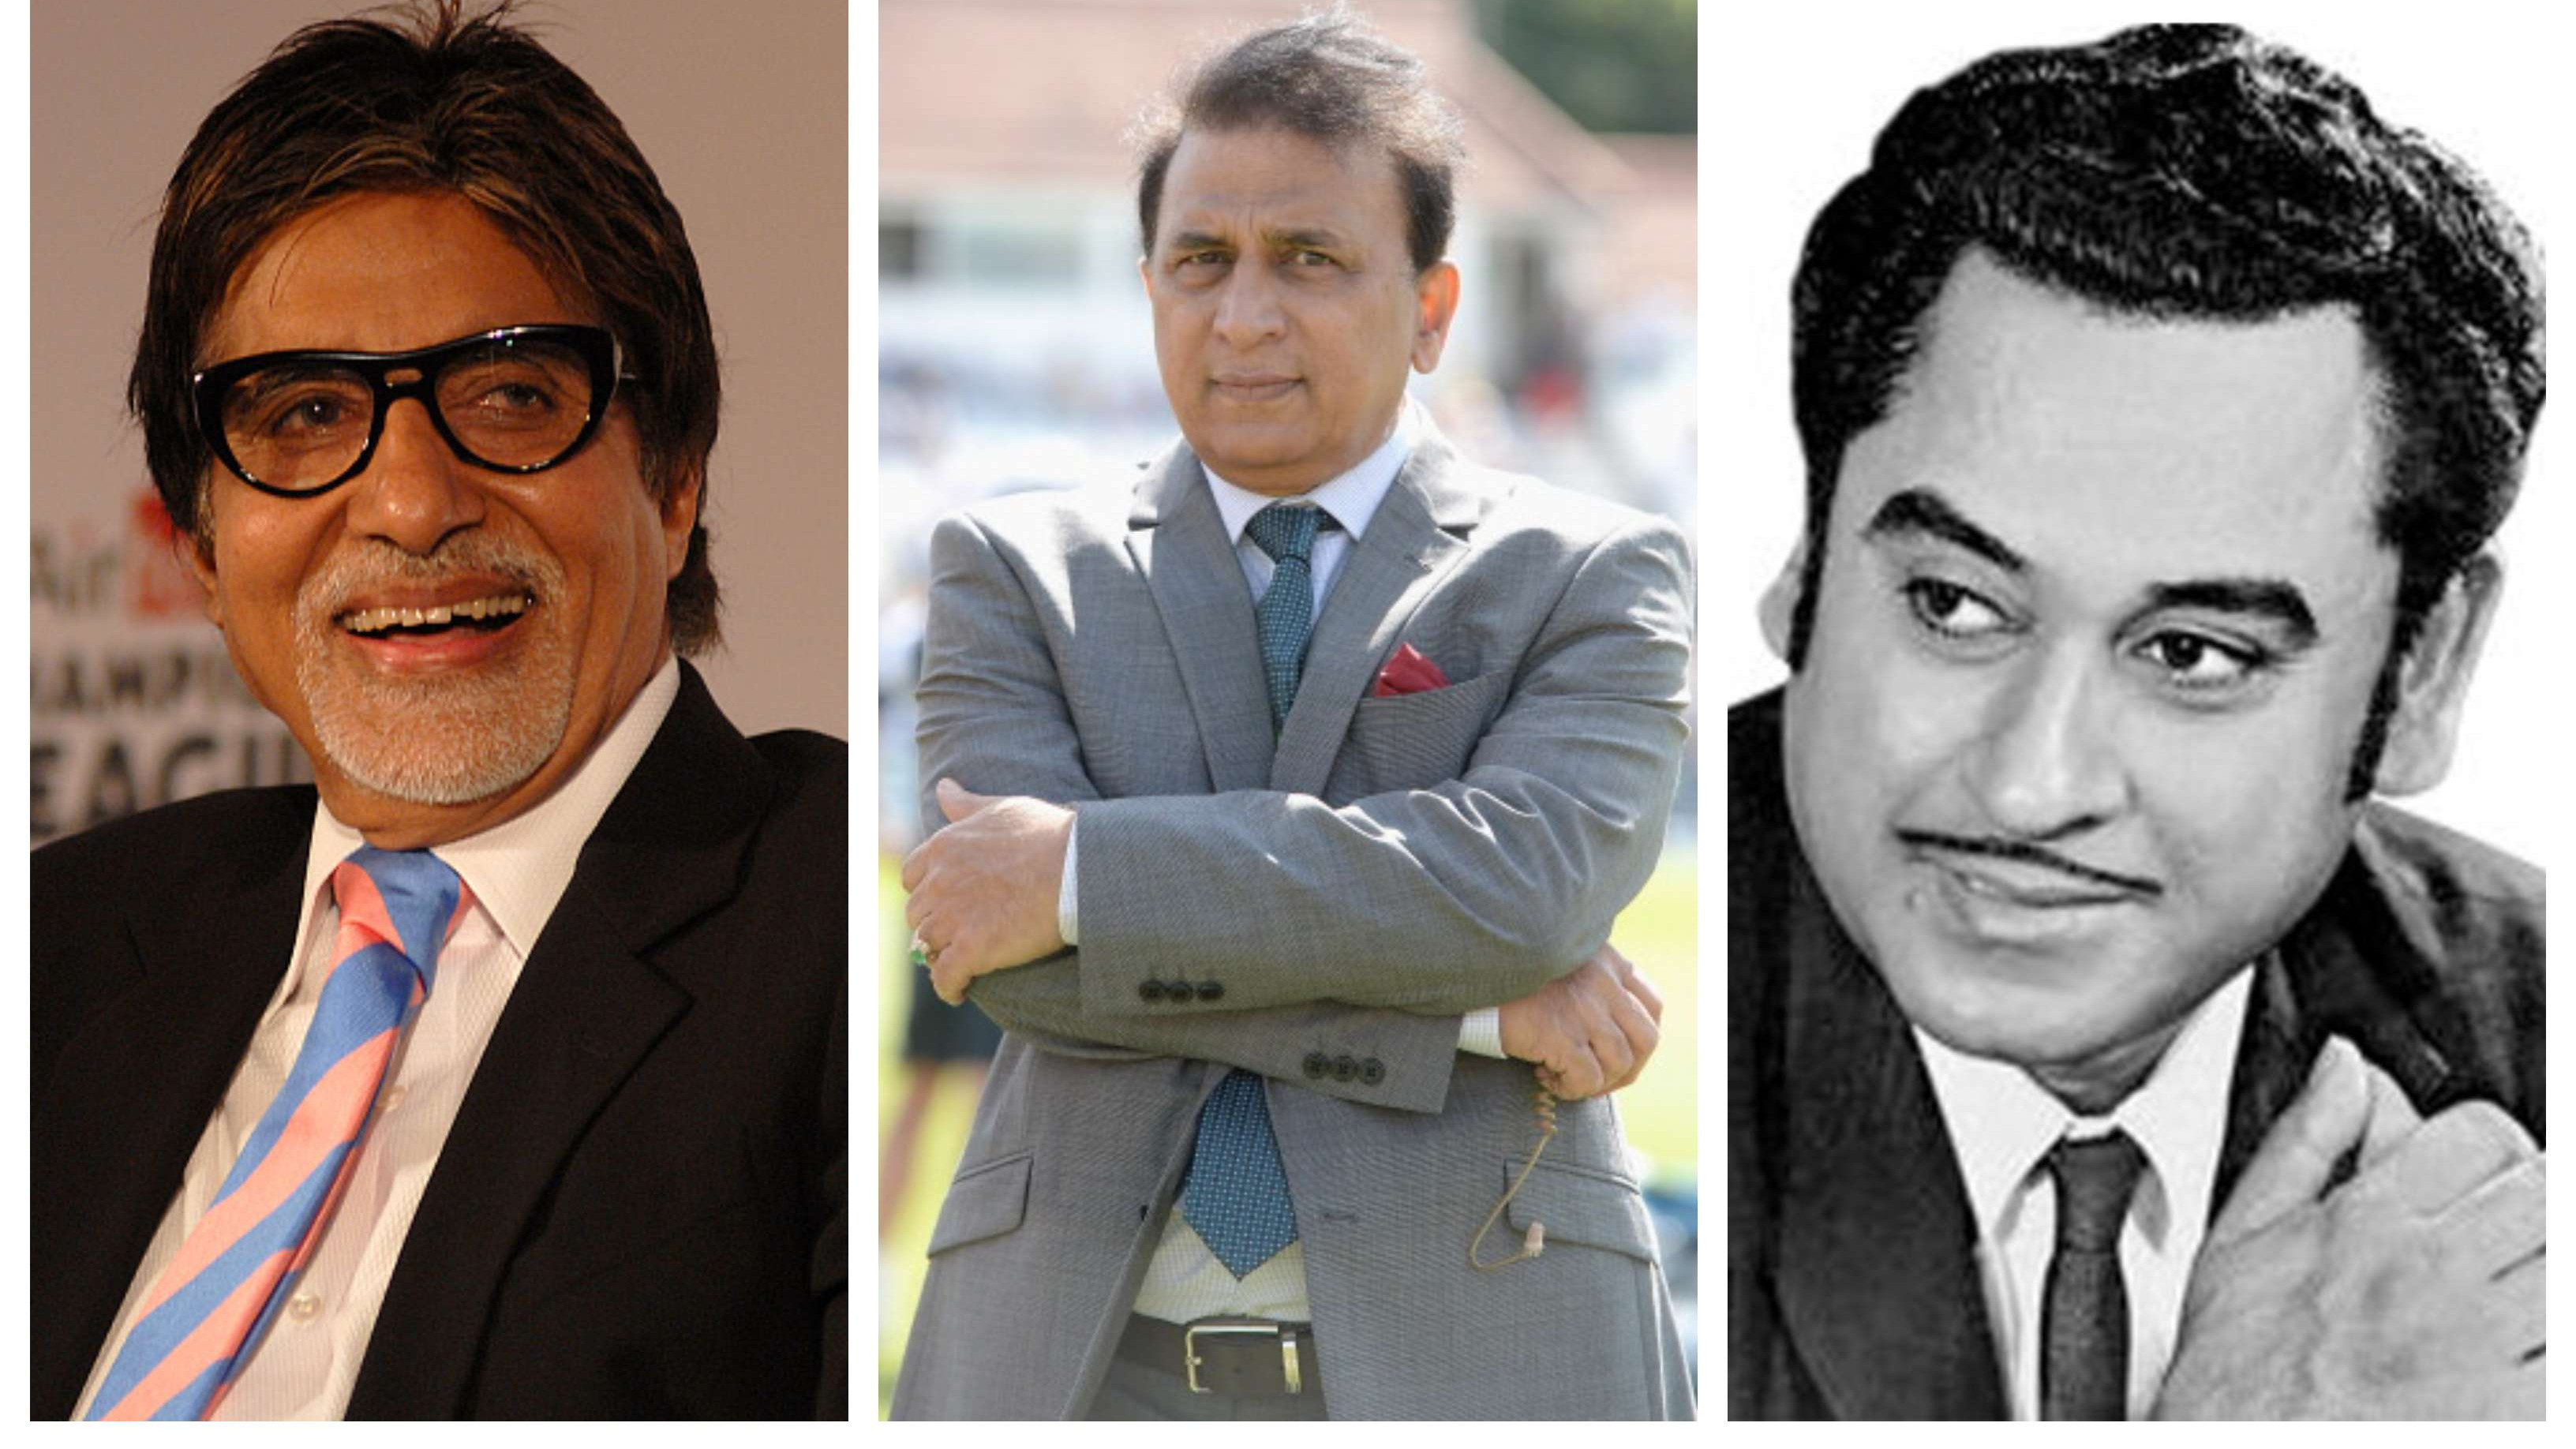 Gavaskar completes 50 years with Indian cricket, says he is humbled to be put in same bracket as Amitabh, Kishore